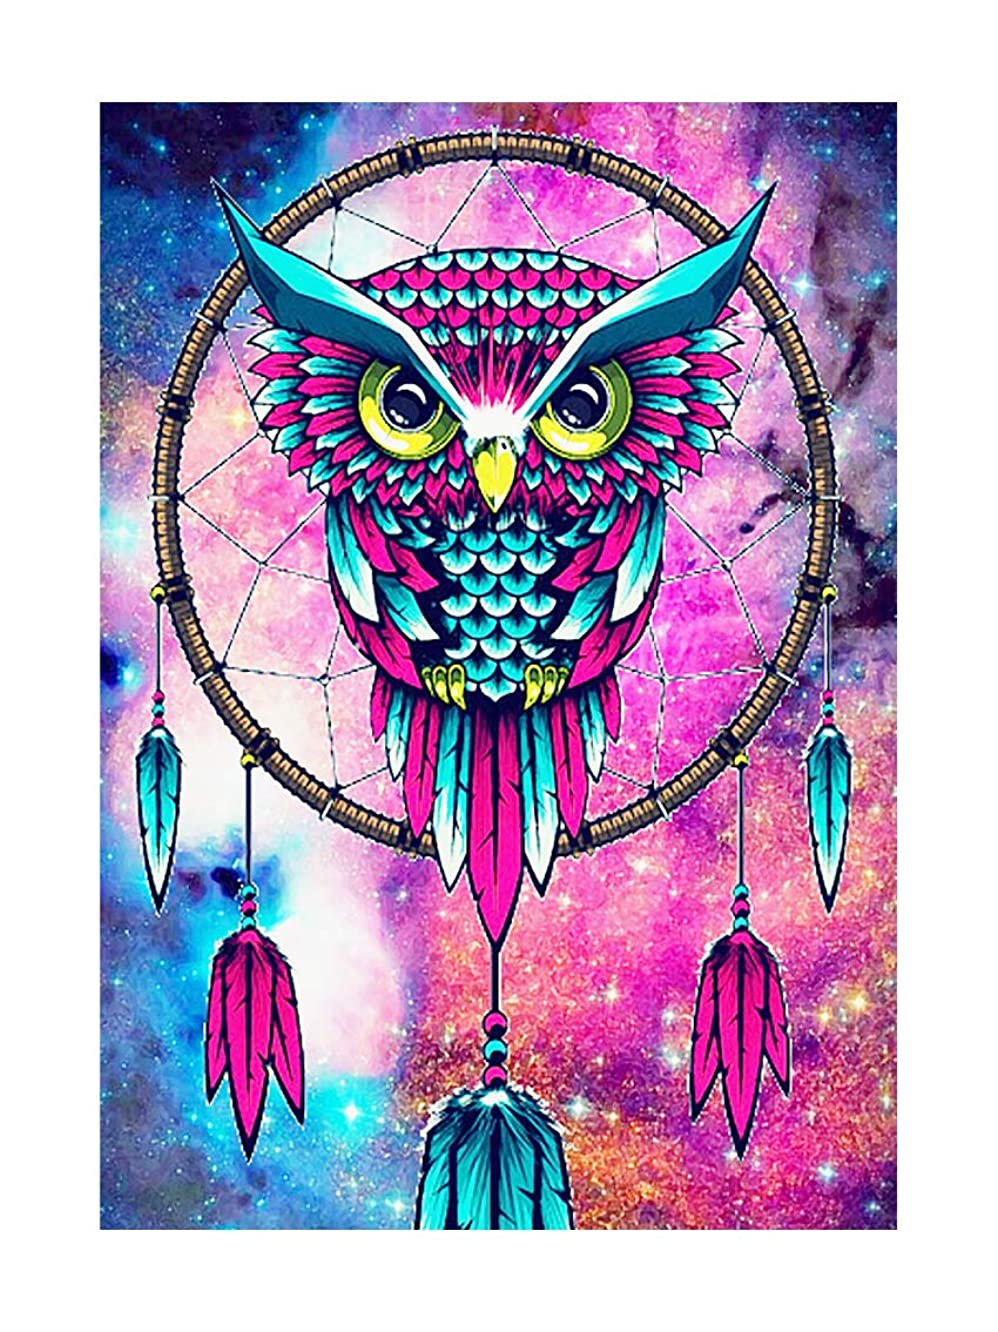 SuperDecor DIY 5D Diamond Painting Kits Full Drill Diamond Embroidery Painting Art Owl Dream Catcher by Number Kits for Home Wall Decor Rose and Blue